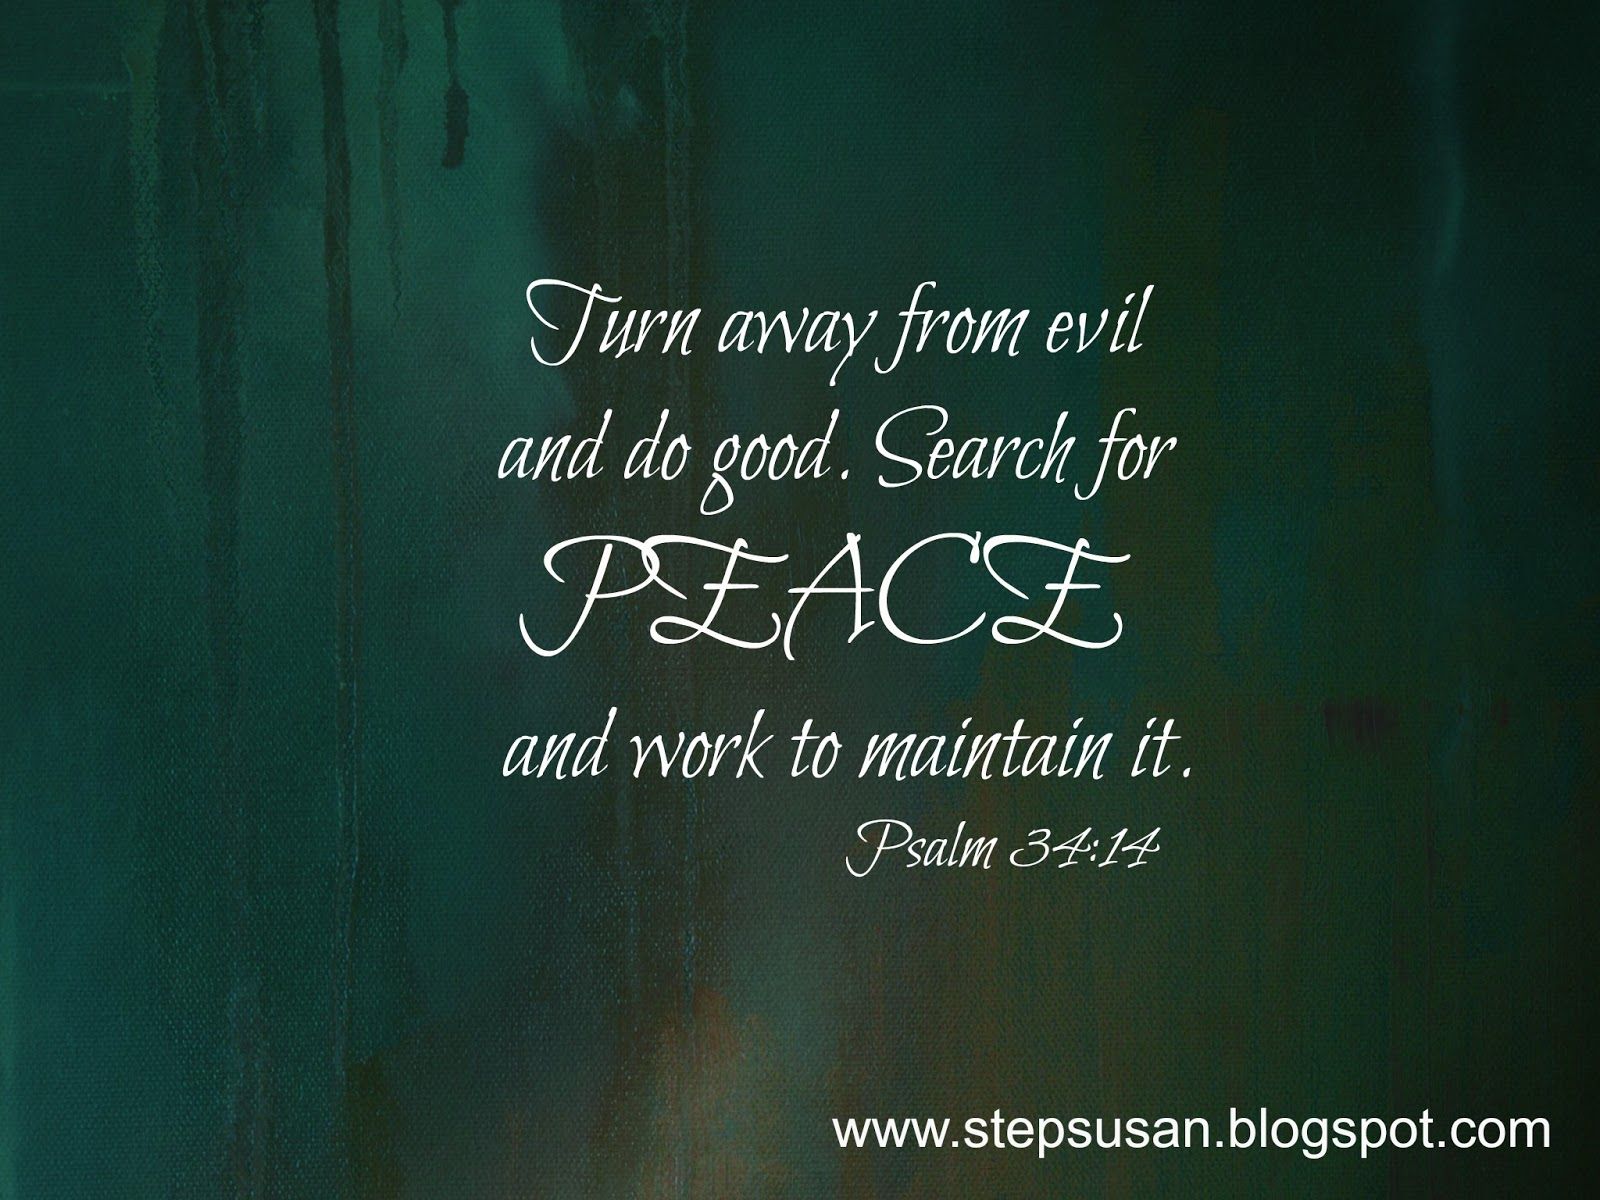 Peace Quotes And Sayings Quotesgram: Bible Quotes Peace. QuotesGram